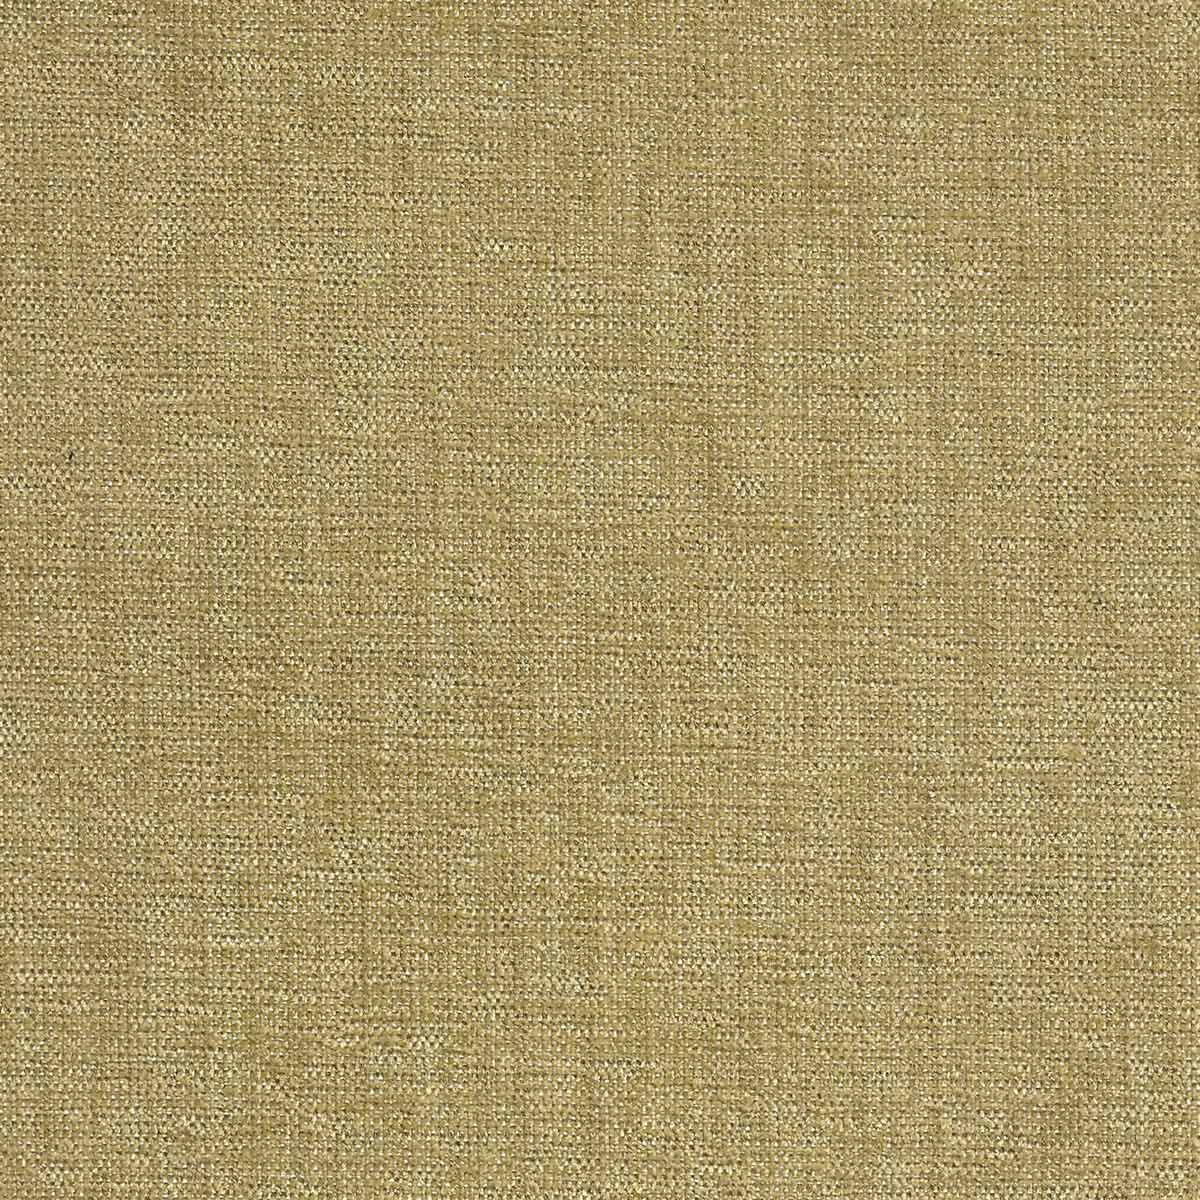 Upholstery fabric entourage in winter wheat by p kaufmann - Lemongrass custom home design inc ...